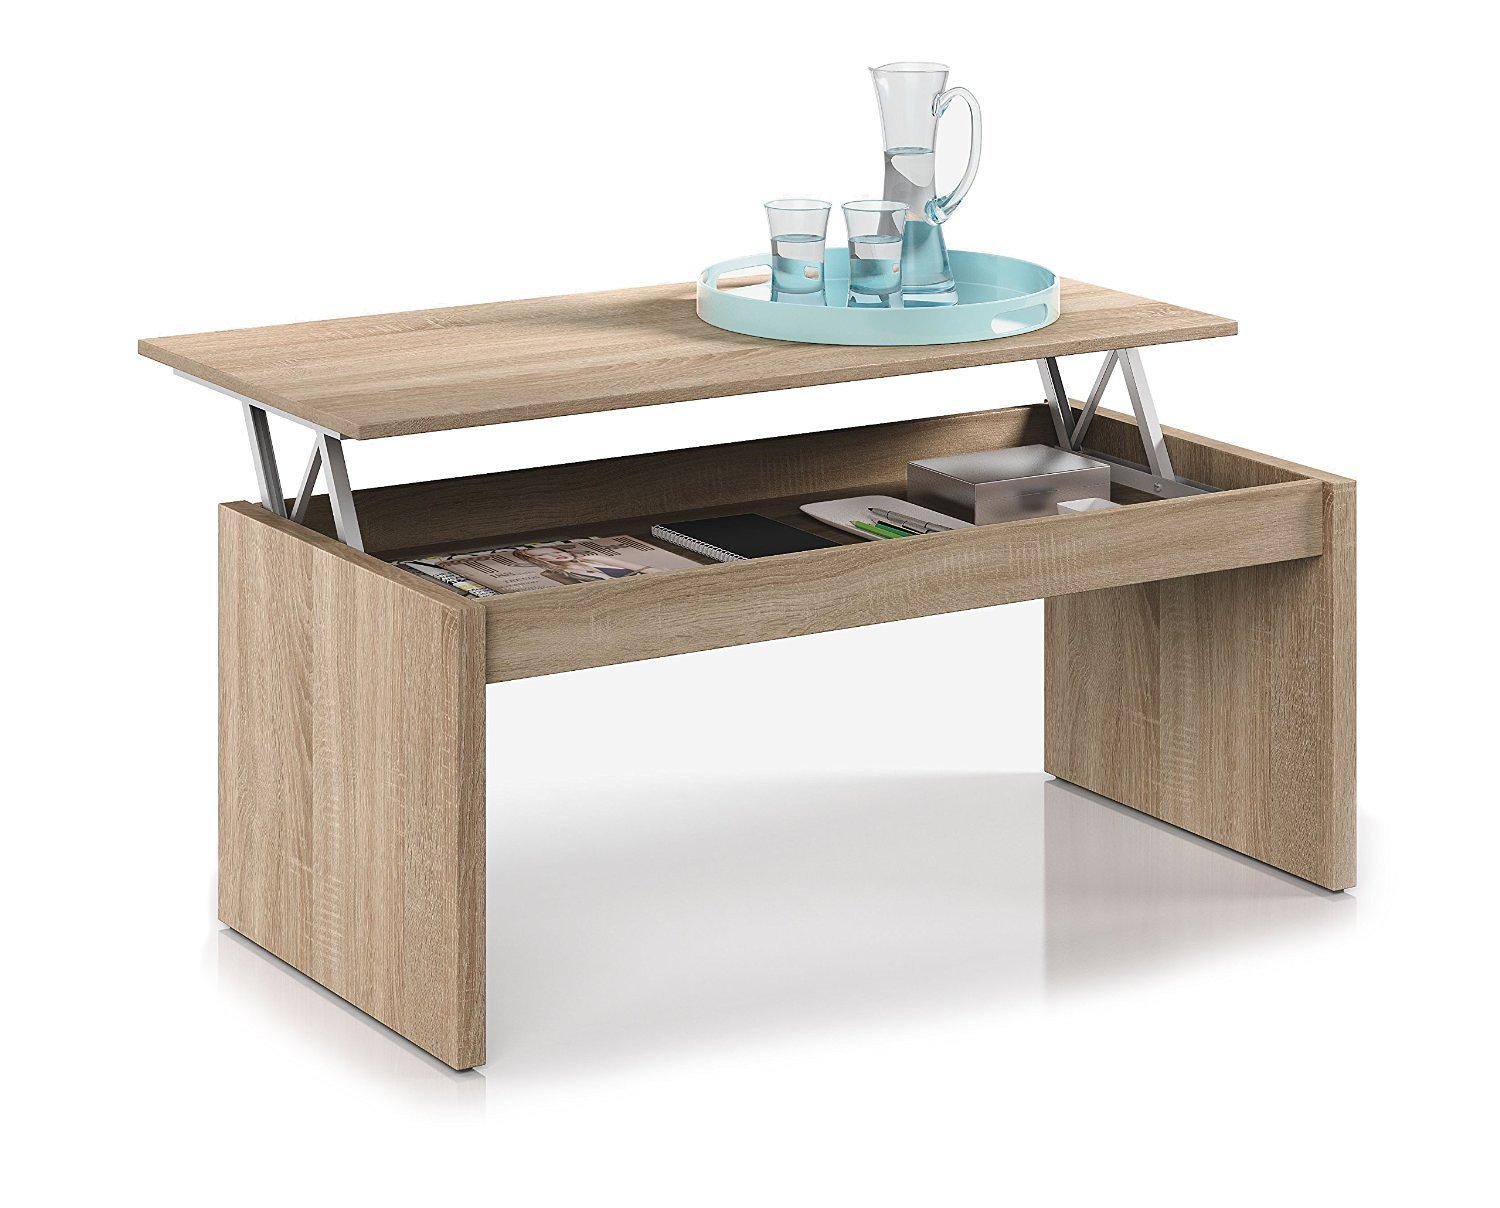 Fabulous Habitdesign F Table Basse Chne Naturel Avec